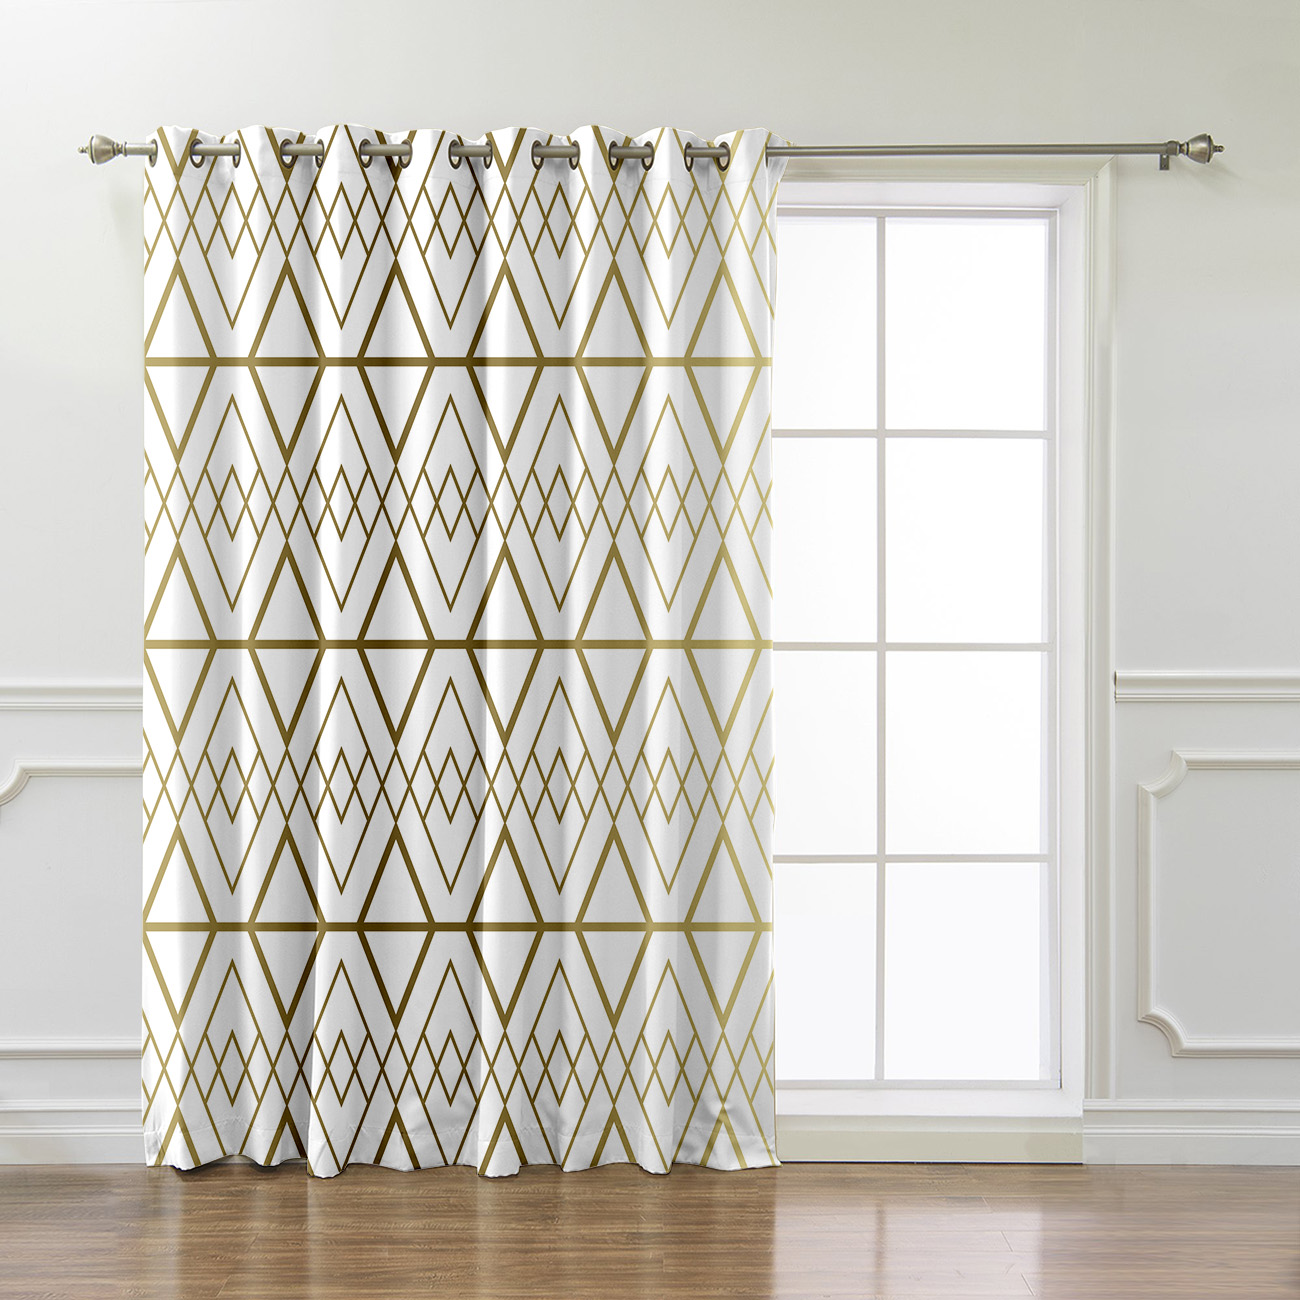 Modern Geometry Window Treatments Curtains Valance Curtain Lights Outdoor Bedroom Indoor Drapes Swag Kids Window Treatment